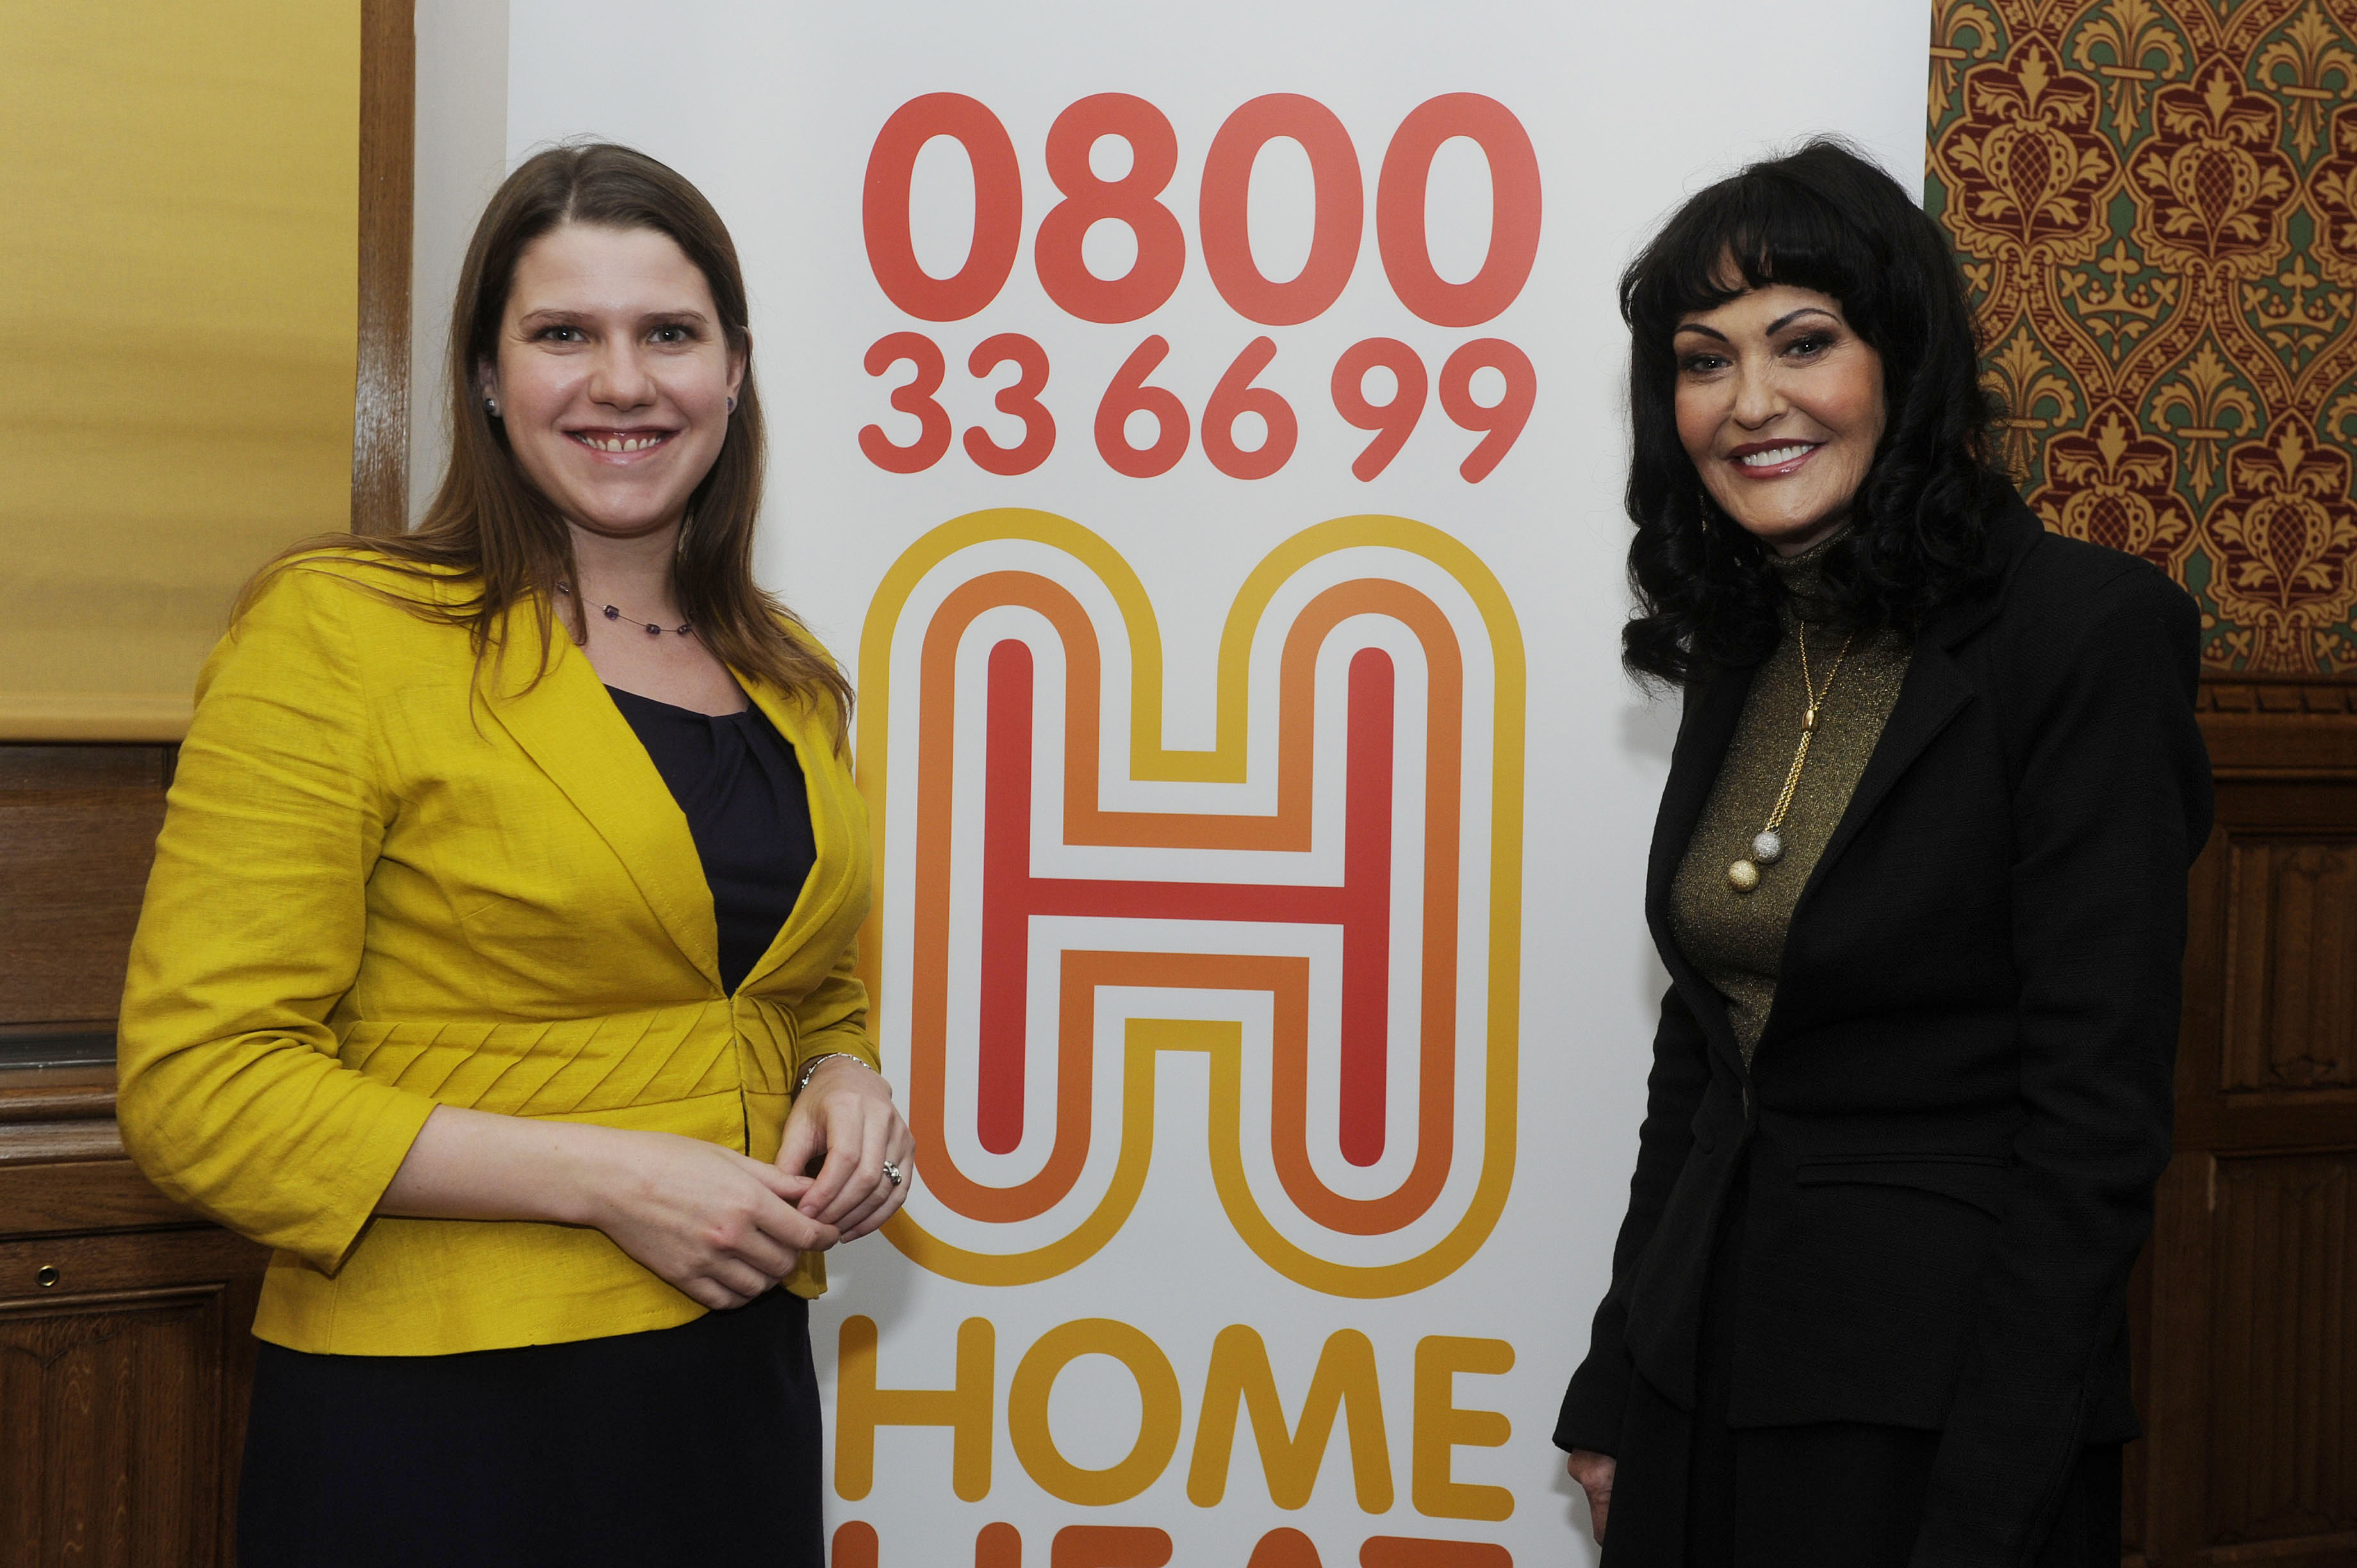 2011-12-07-Home_Heat_Helpline_with_Hilary_Devey.jpg